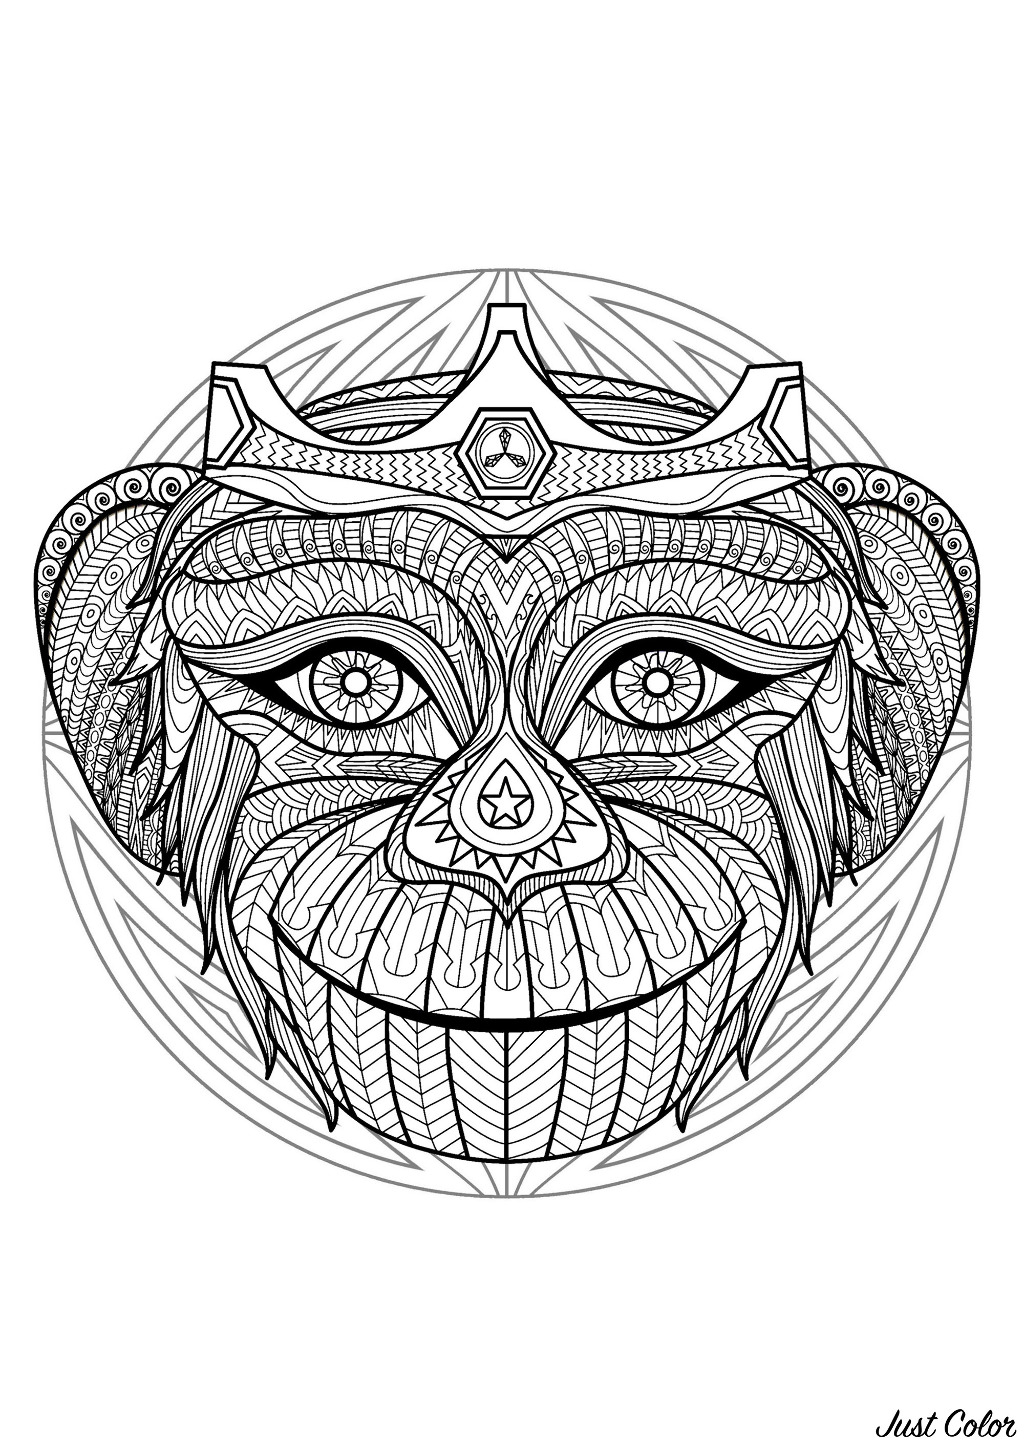 This monkey is just waiting to be colored in this pretty original Mandala, it's up to you to print it and let your artistic sense guide you.